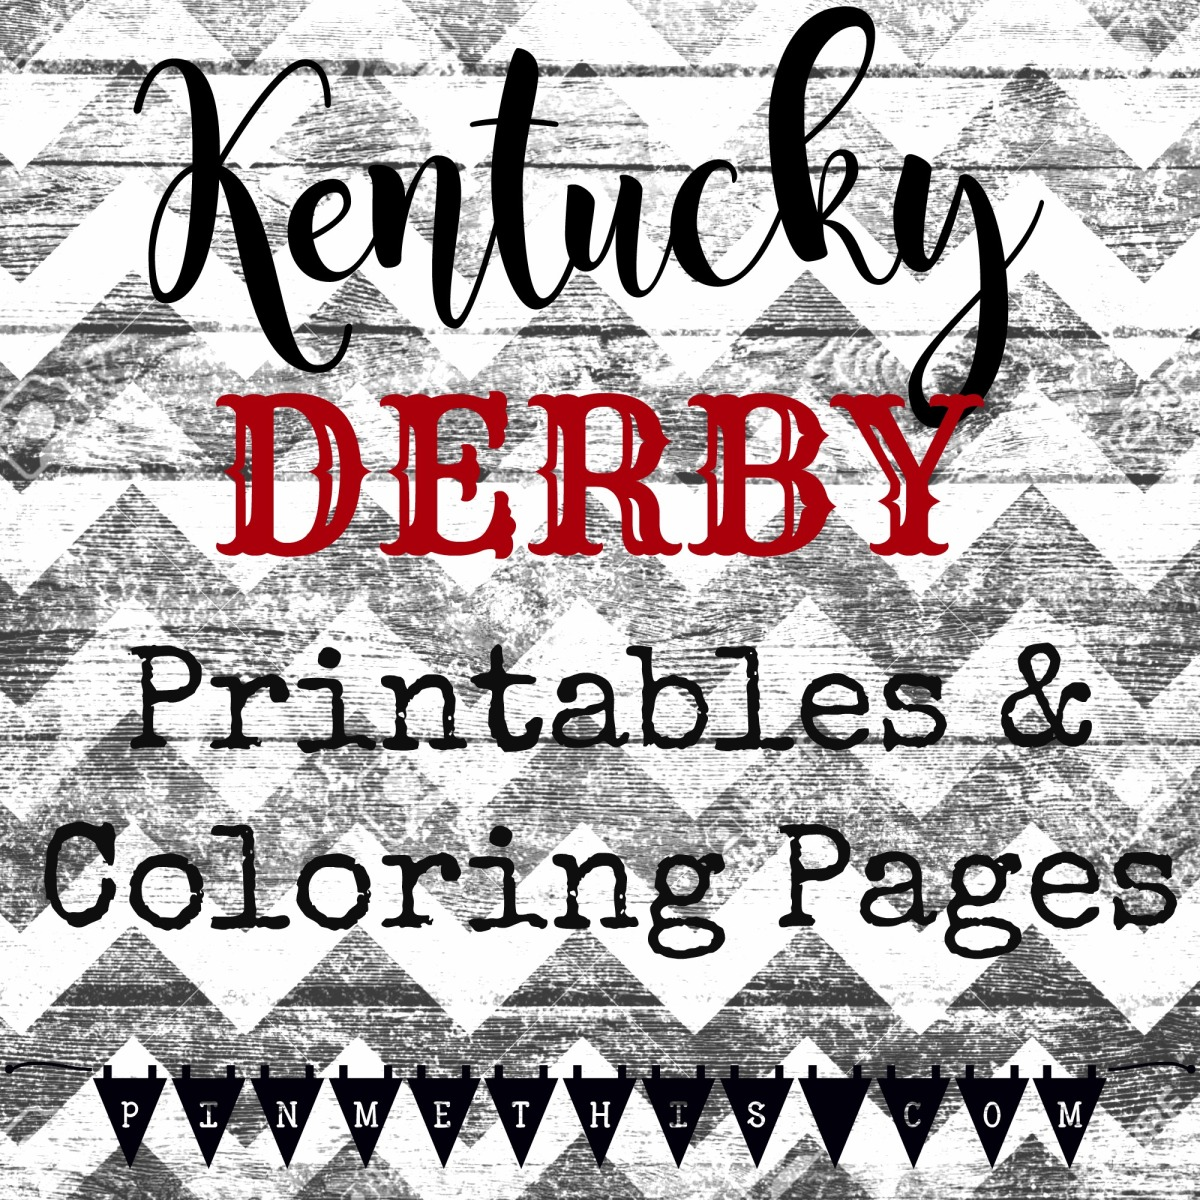 It's just a graphic of Genius Kentucky Derby Printables